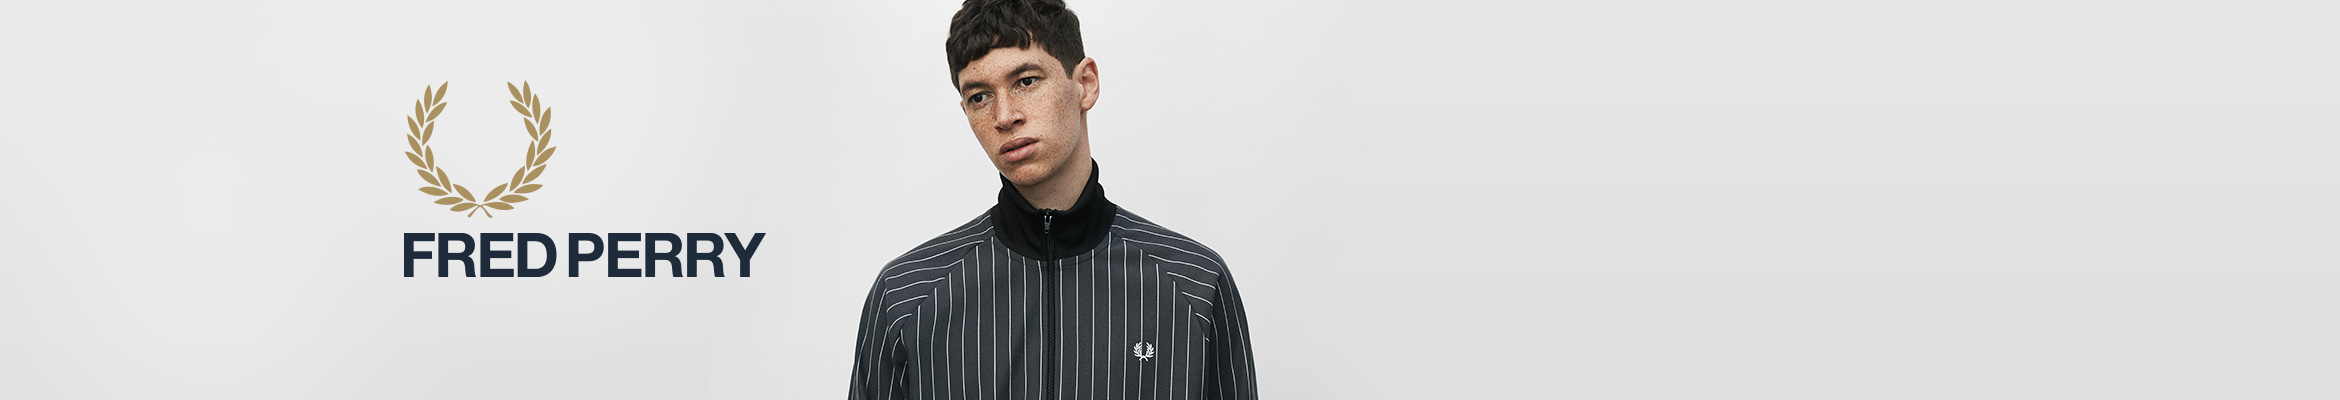 Fred_Perry_bw